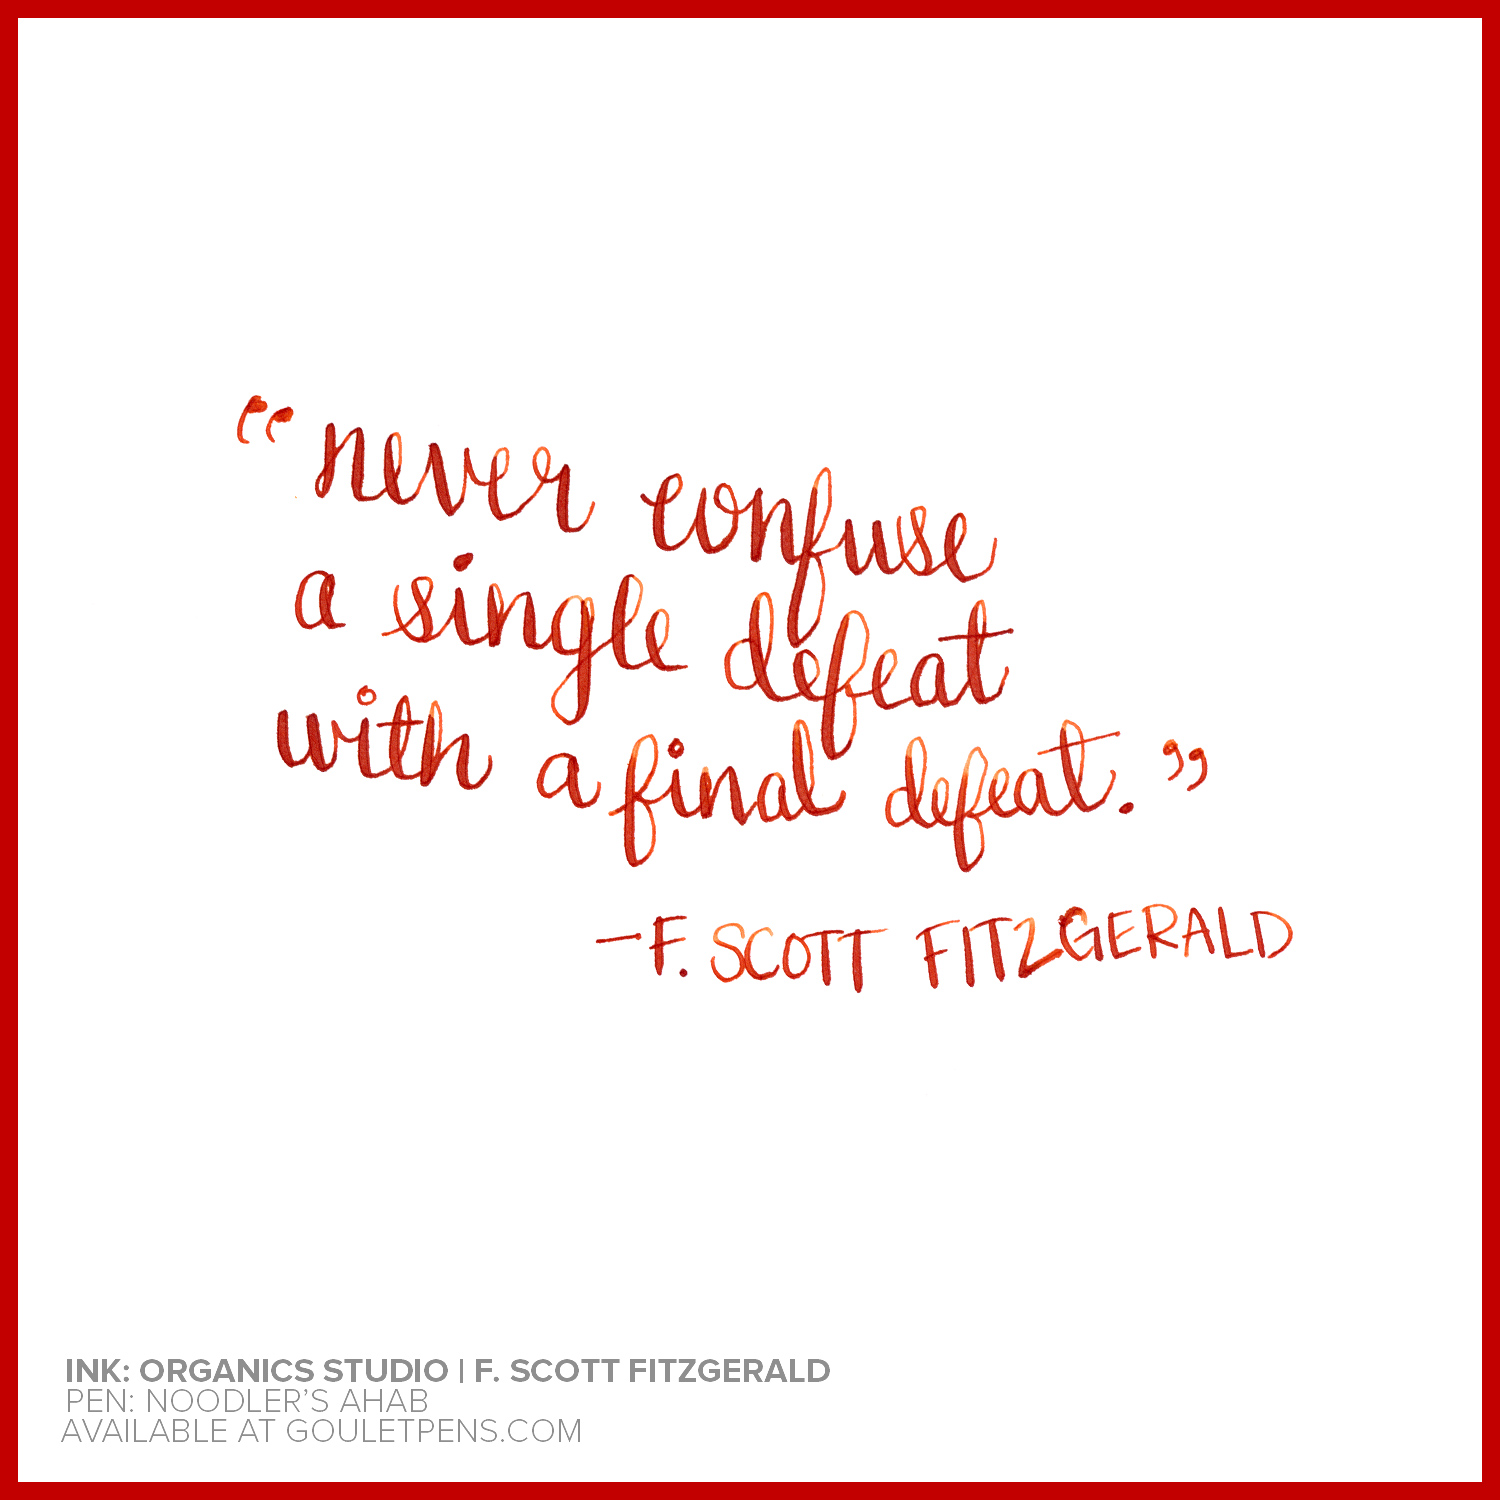 Love Quotes F Scott Fitzgerald Create Calligraphystyle Quotes With A Noodler's Flex Pen And